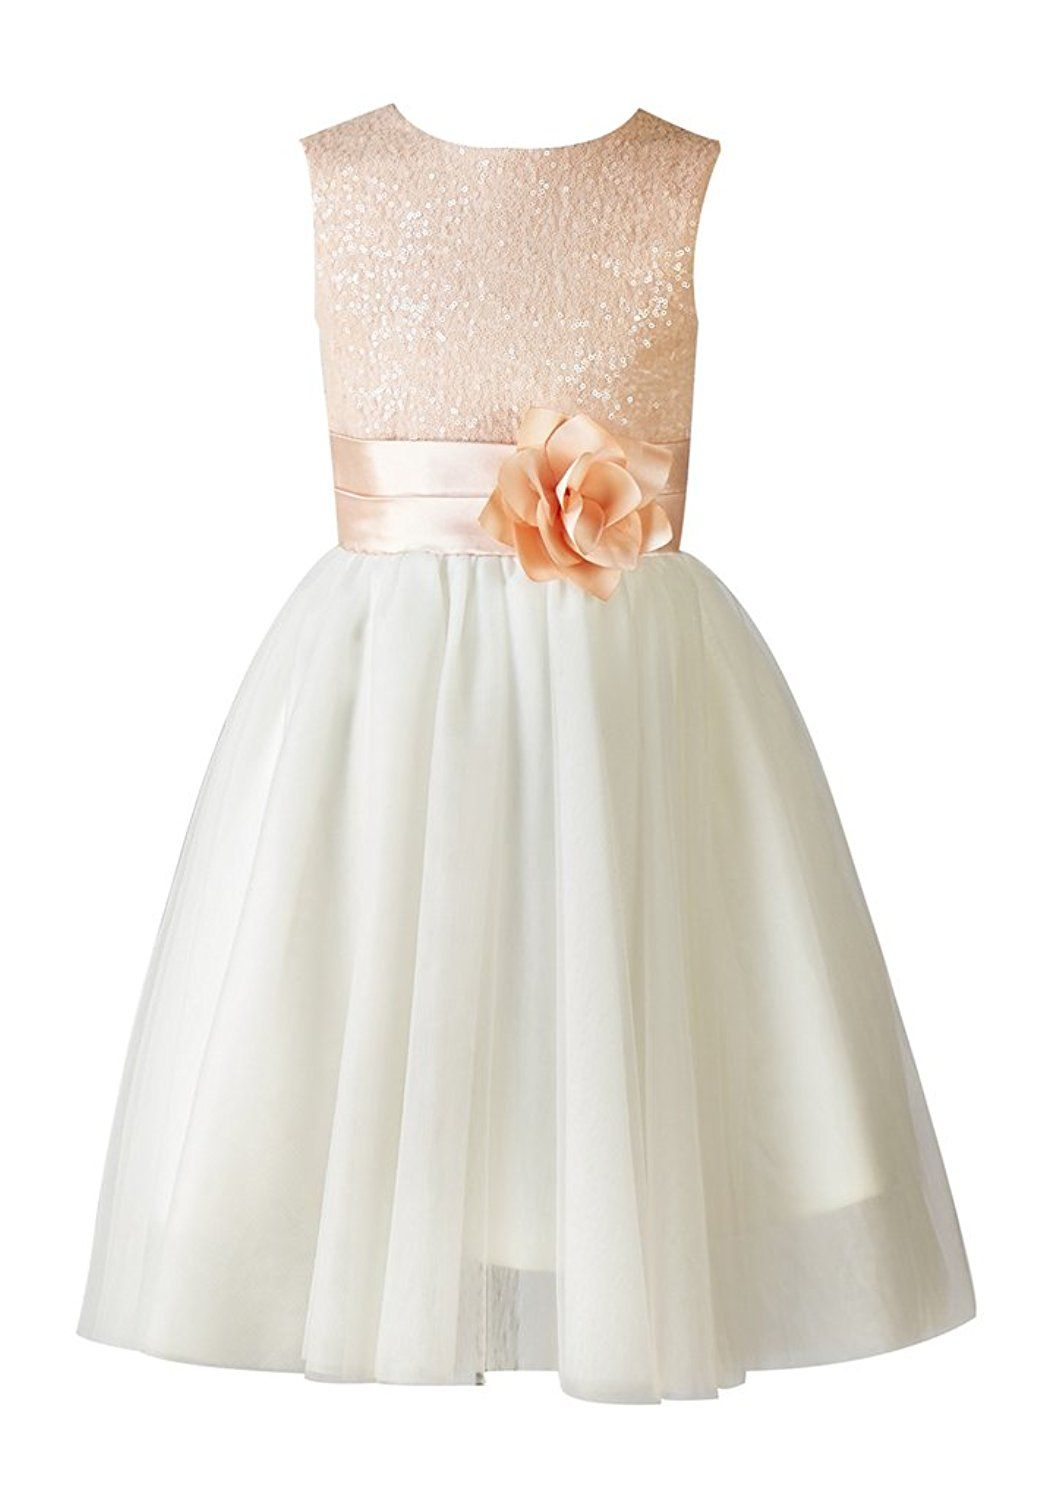 Thstylee girls sequin tulle flower girl dress junior bridesmaid thstylee girls sequin tulle flower girl dress junior bridesmaid dress 3t blush pink ombrellifo Choice Image